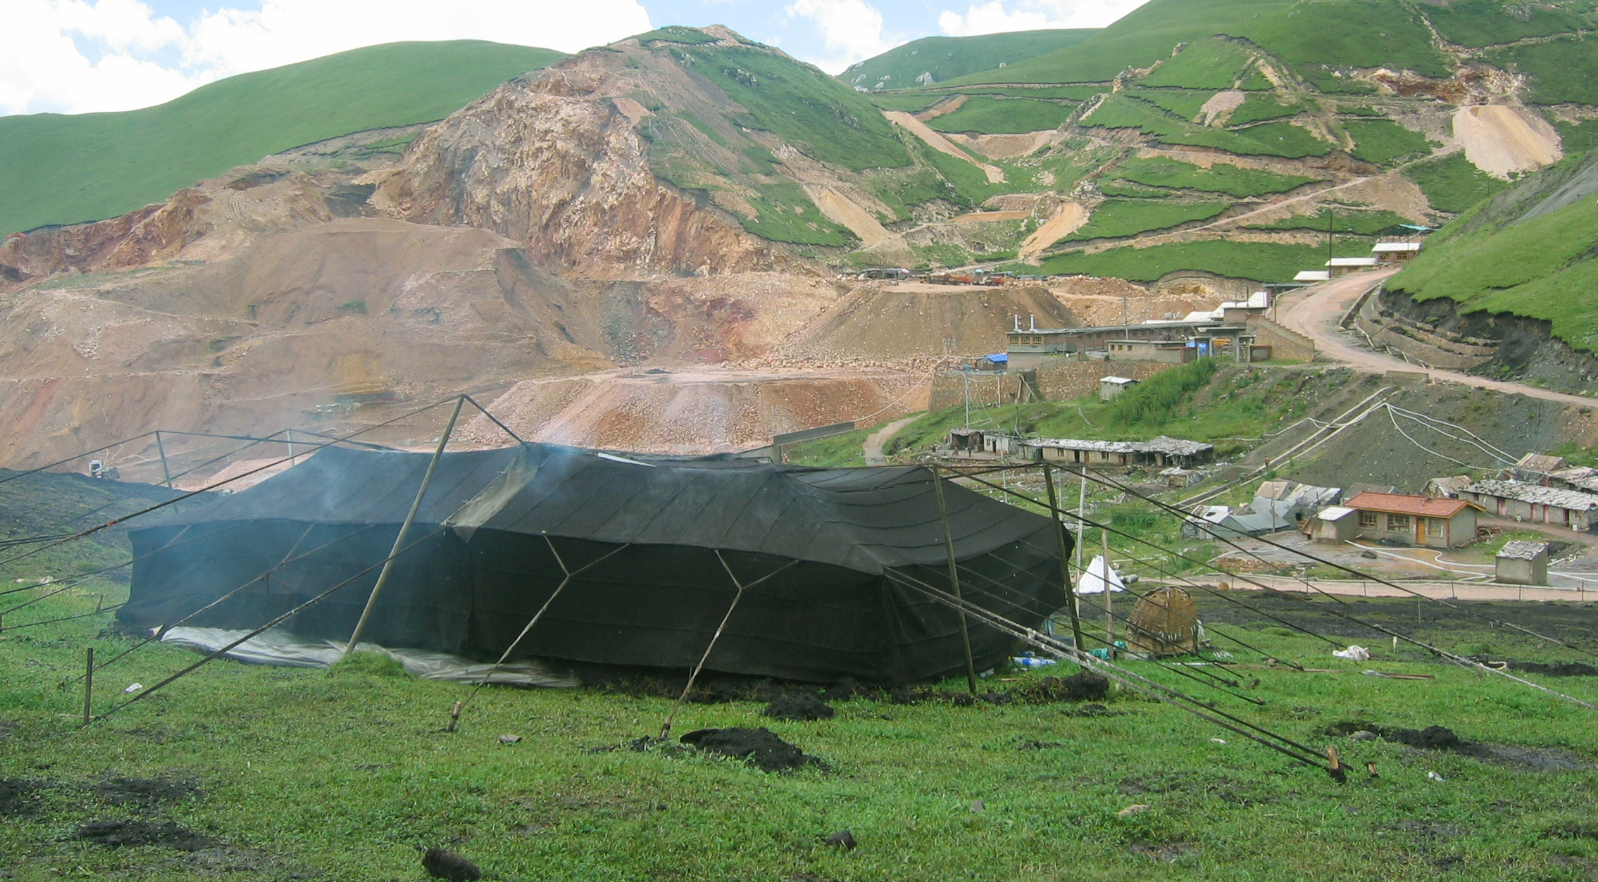 Nomad tent faces off with Chinese mining venture on the grasslands. All too often, this happens within the boundaries of a so-called nature reserve.